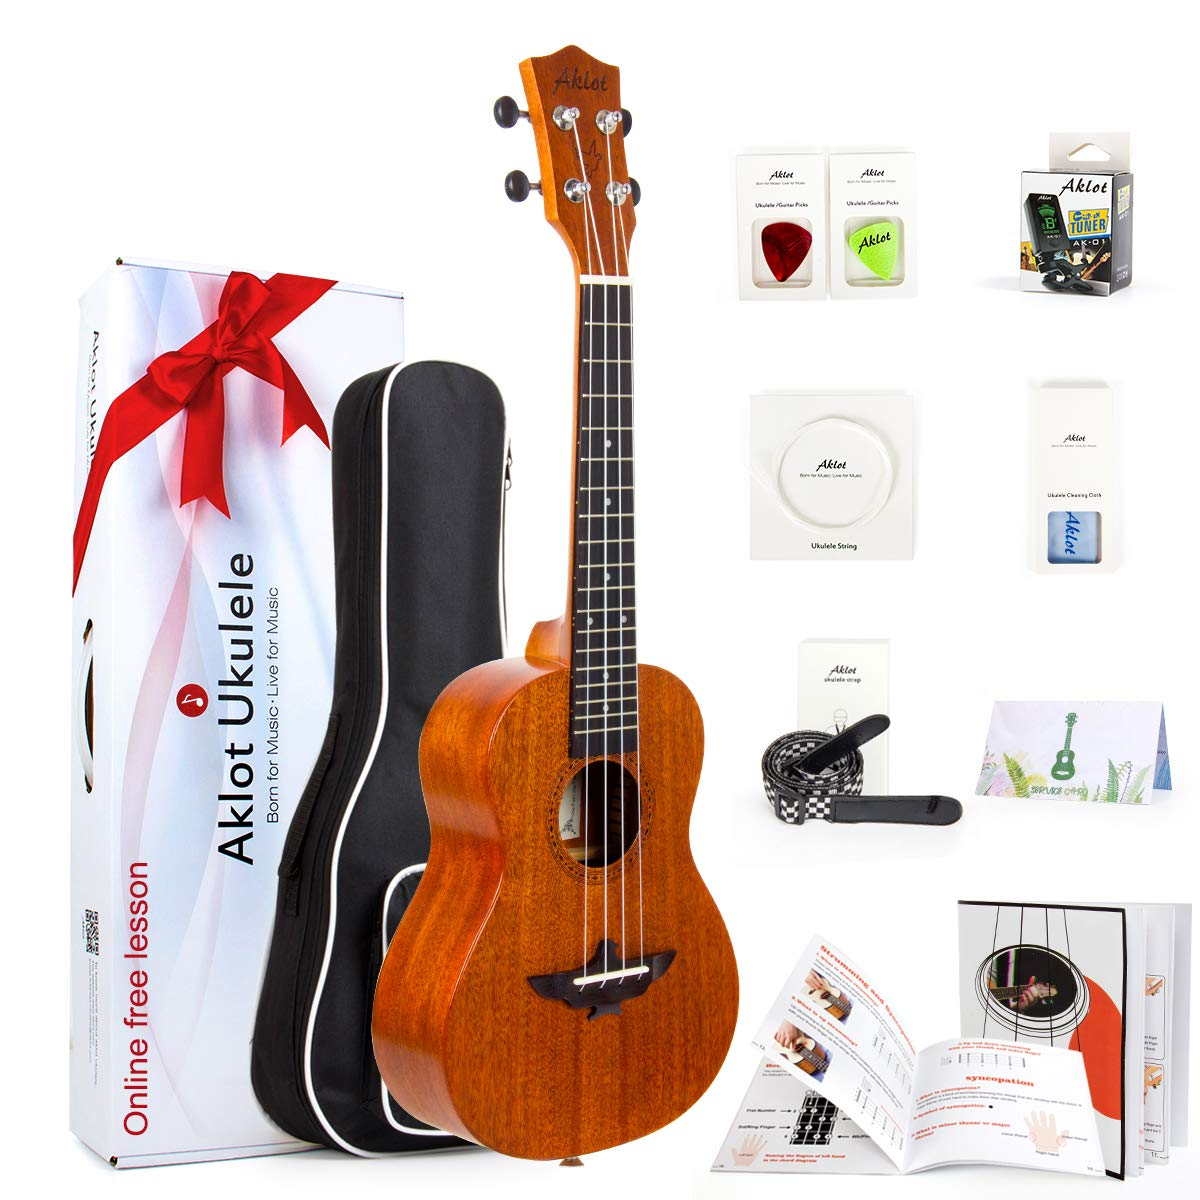 Ukulele Solid Mahogany 23 Inch Concert Uke With Free Online Course 8 Packs Beginner Starter Kit ( Gig Bag Picks Tuner Strap String Cleaning Cloth Instruction Book Gift Box ) From AKLOT by AKLOT